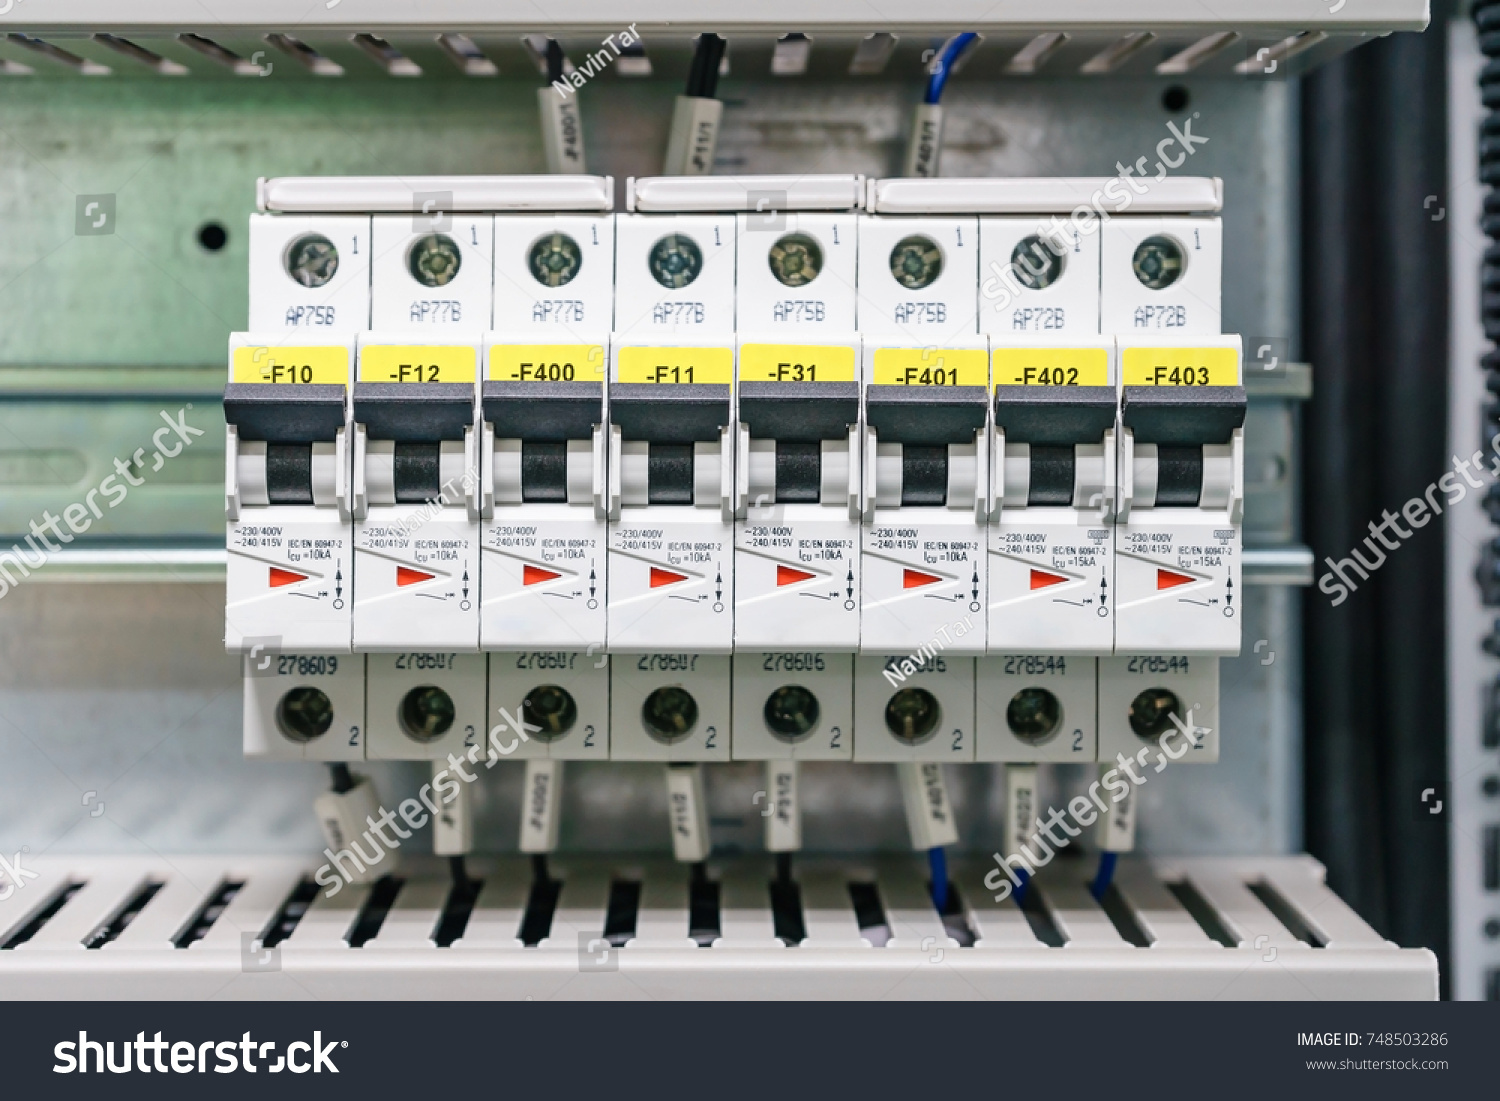 Electical distribution fuseboard. Electrical supplies. Electrical panel at  a assembly line factory. Controls